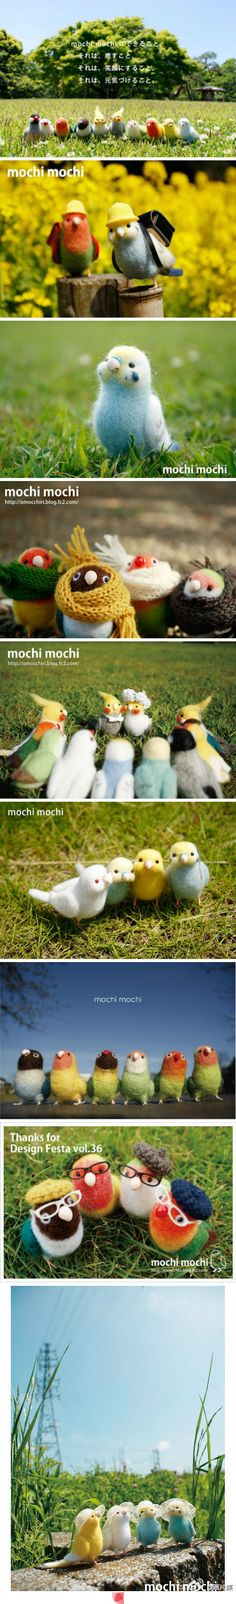 Needle Felted parrots by Mochi Mochi